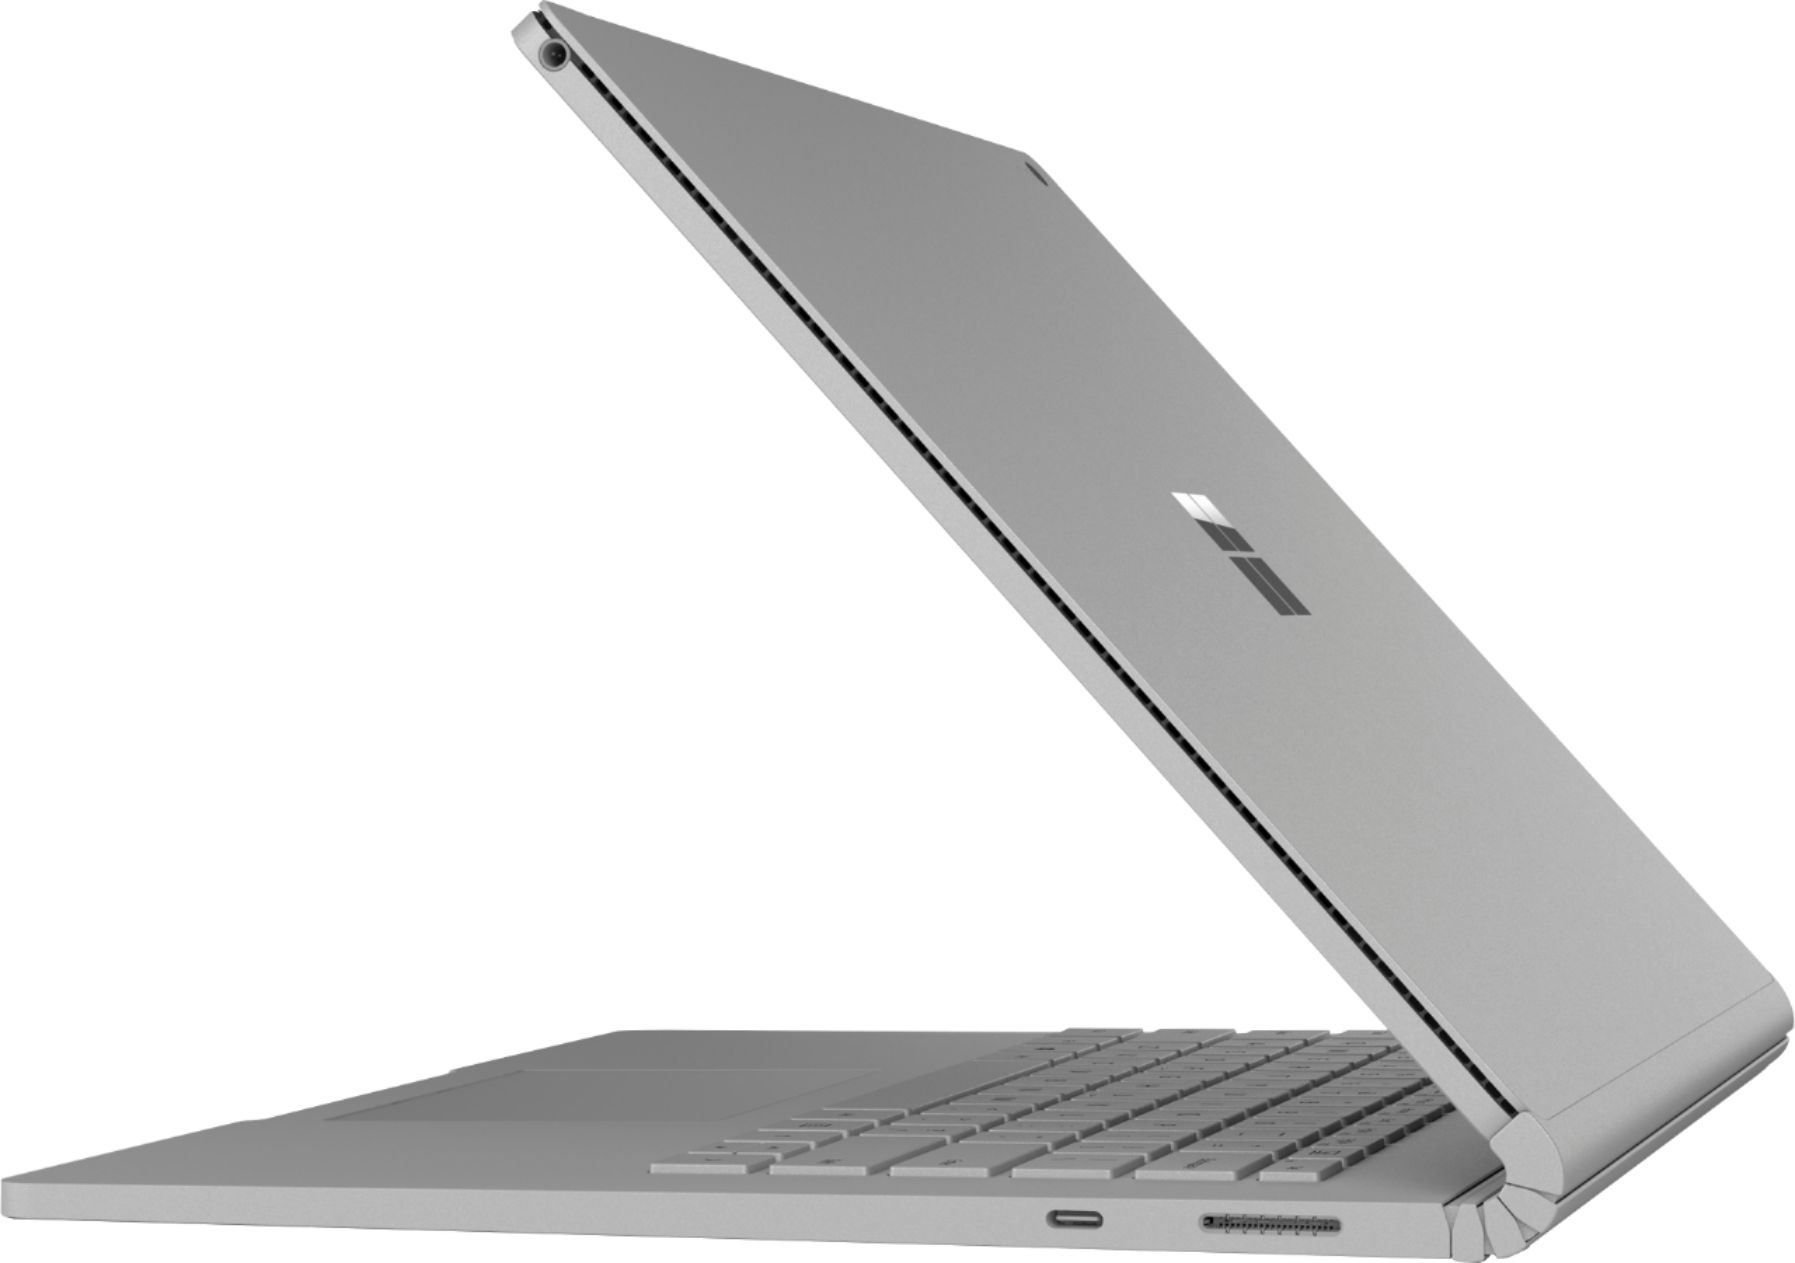 """Left Zoom. Microsoft - Geek Squad Certified Refurbished Surface Book 2 - 13.5"""" Touch-Screen Laptop - Intel Core i7 - 8GB Memory - 256GB SSD - Platinum."""